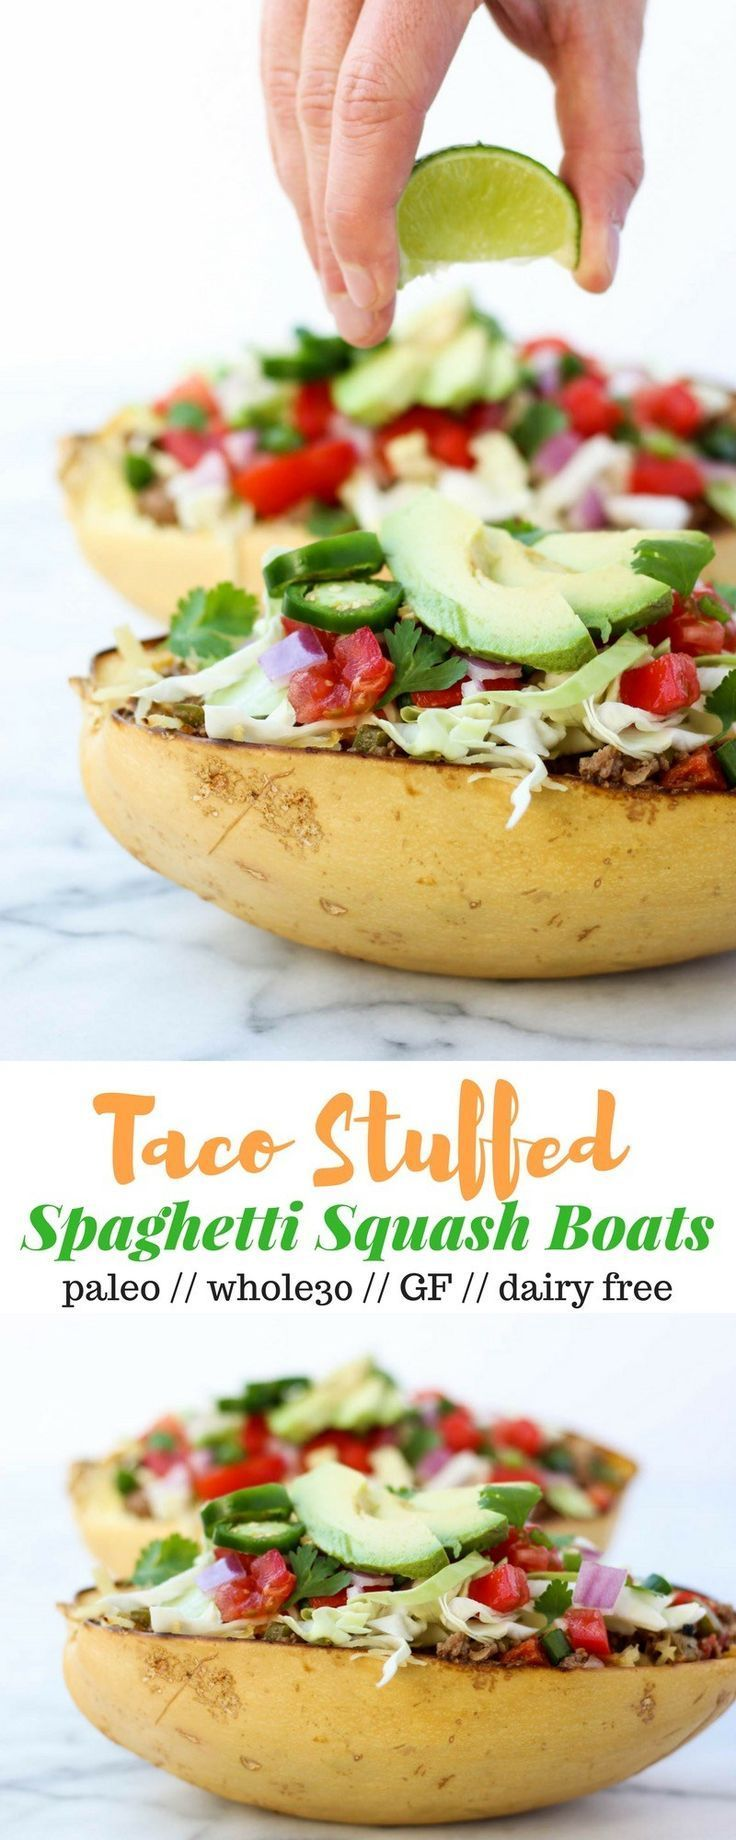 Taco Spaghetti Squash Boats bring you the taco flavors without the tortillas! They're loaded withprotein and veggies and are paleo and Whole30 complaint! - Eat the Gains